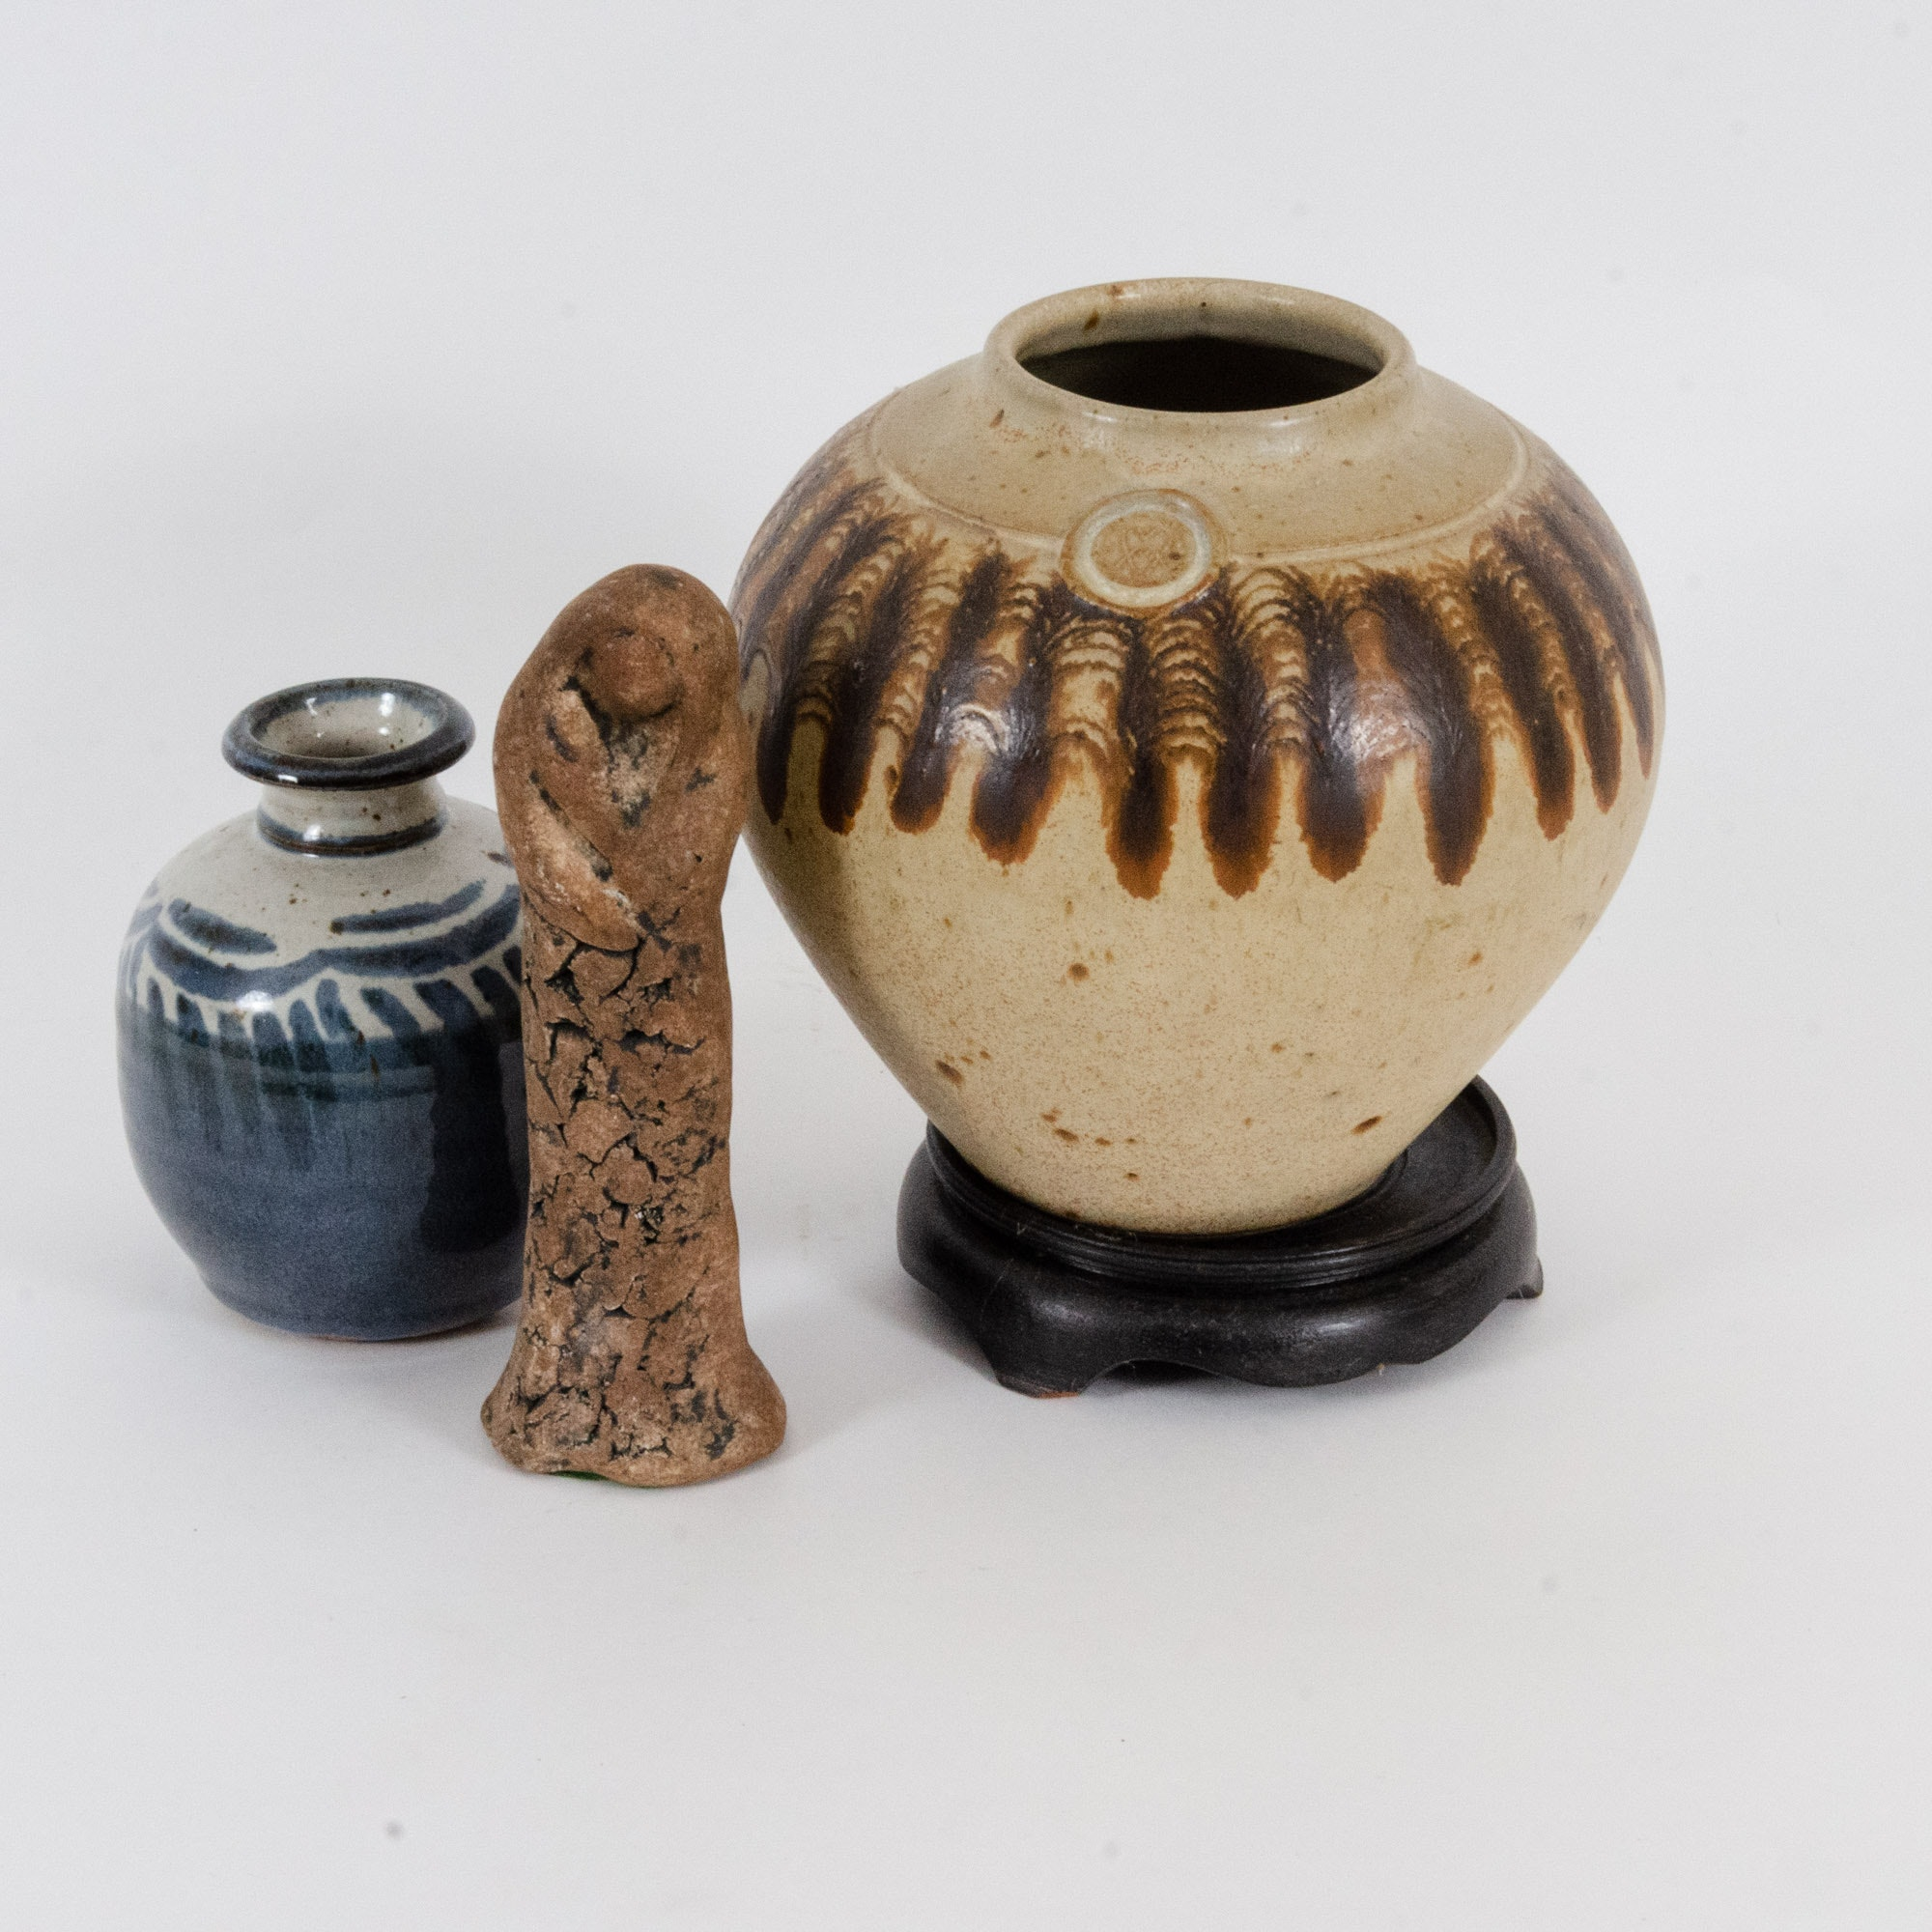 Art Pottery Vases and Figurine